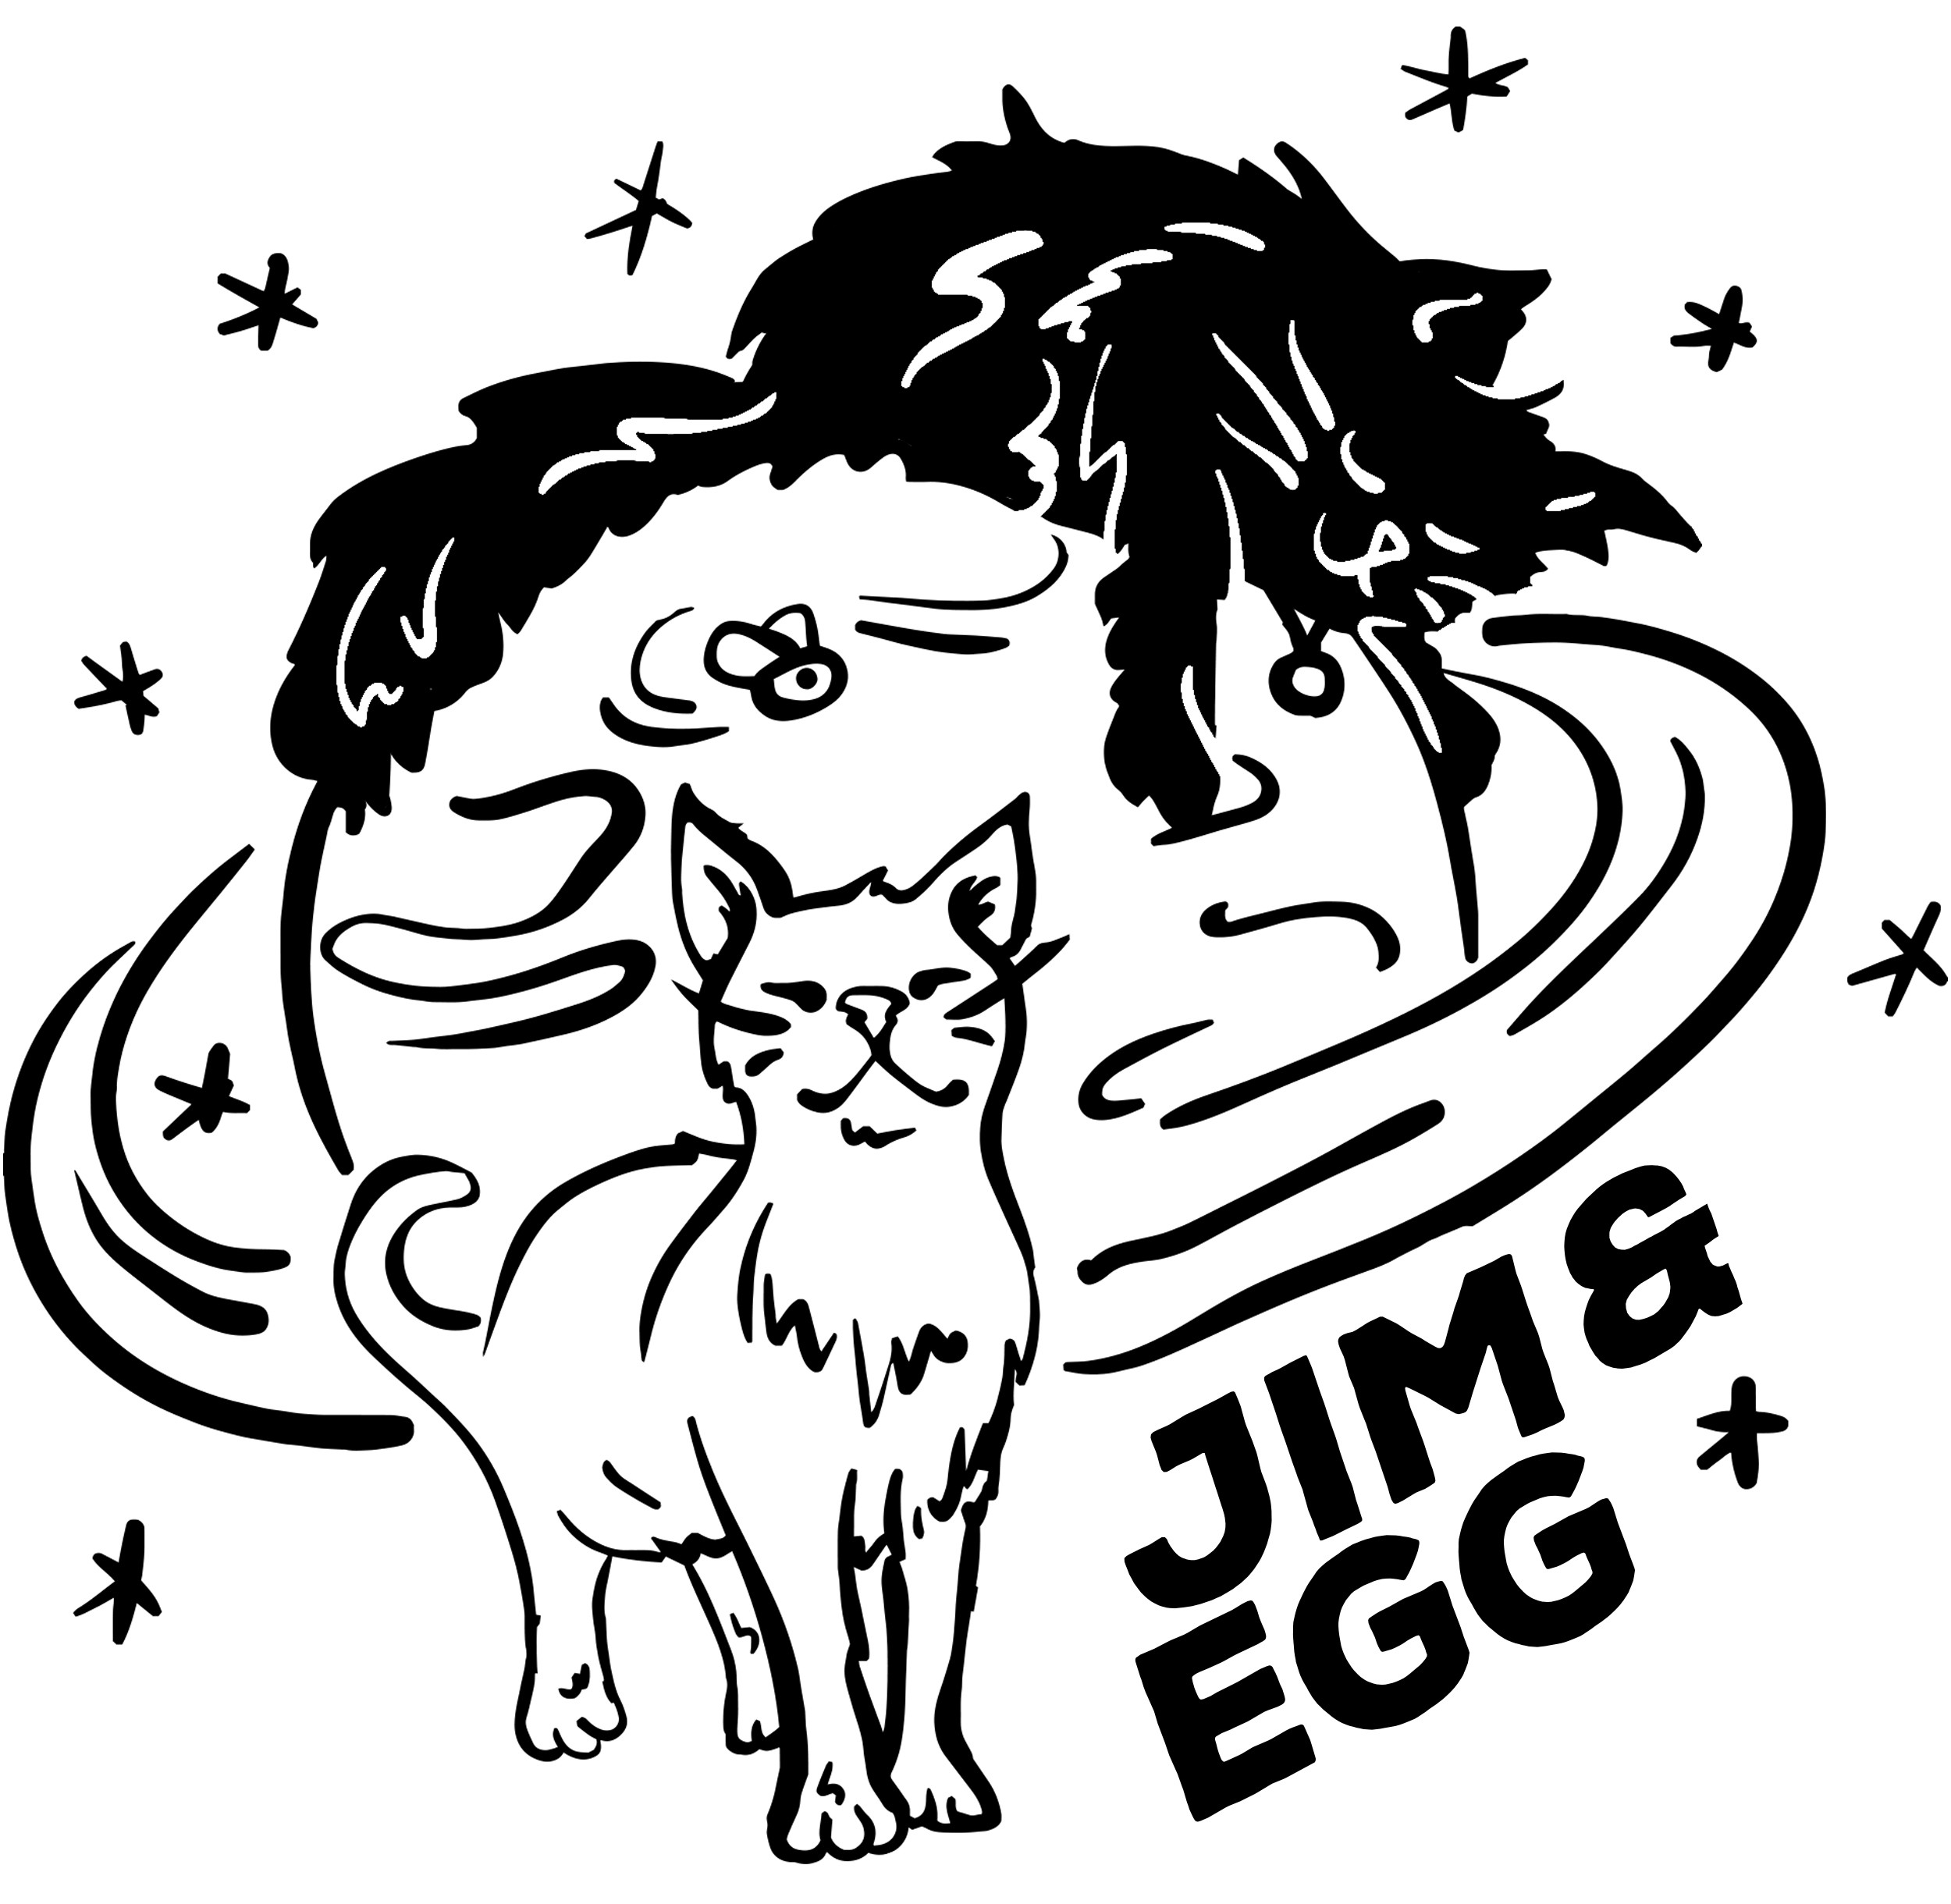 Jim & Egg need a colourful new shirt!     UNISEX T-SHIRT DESIGN